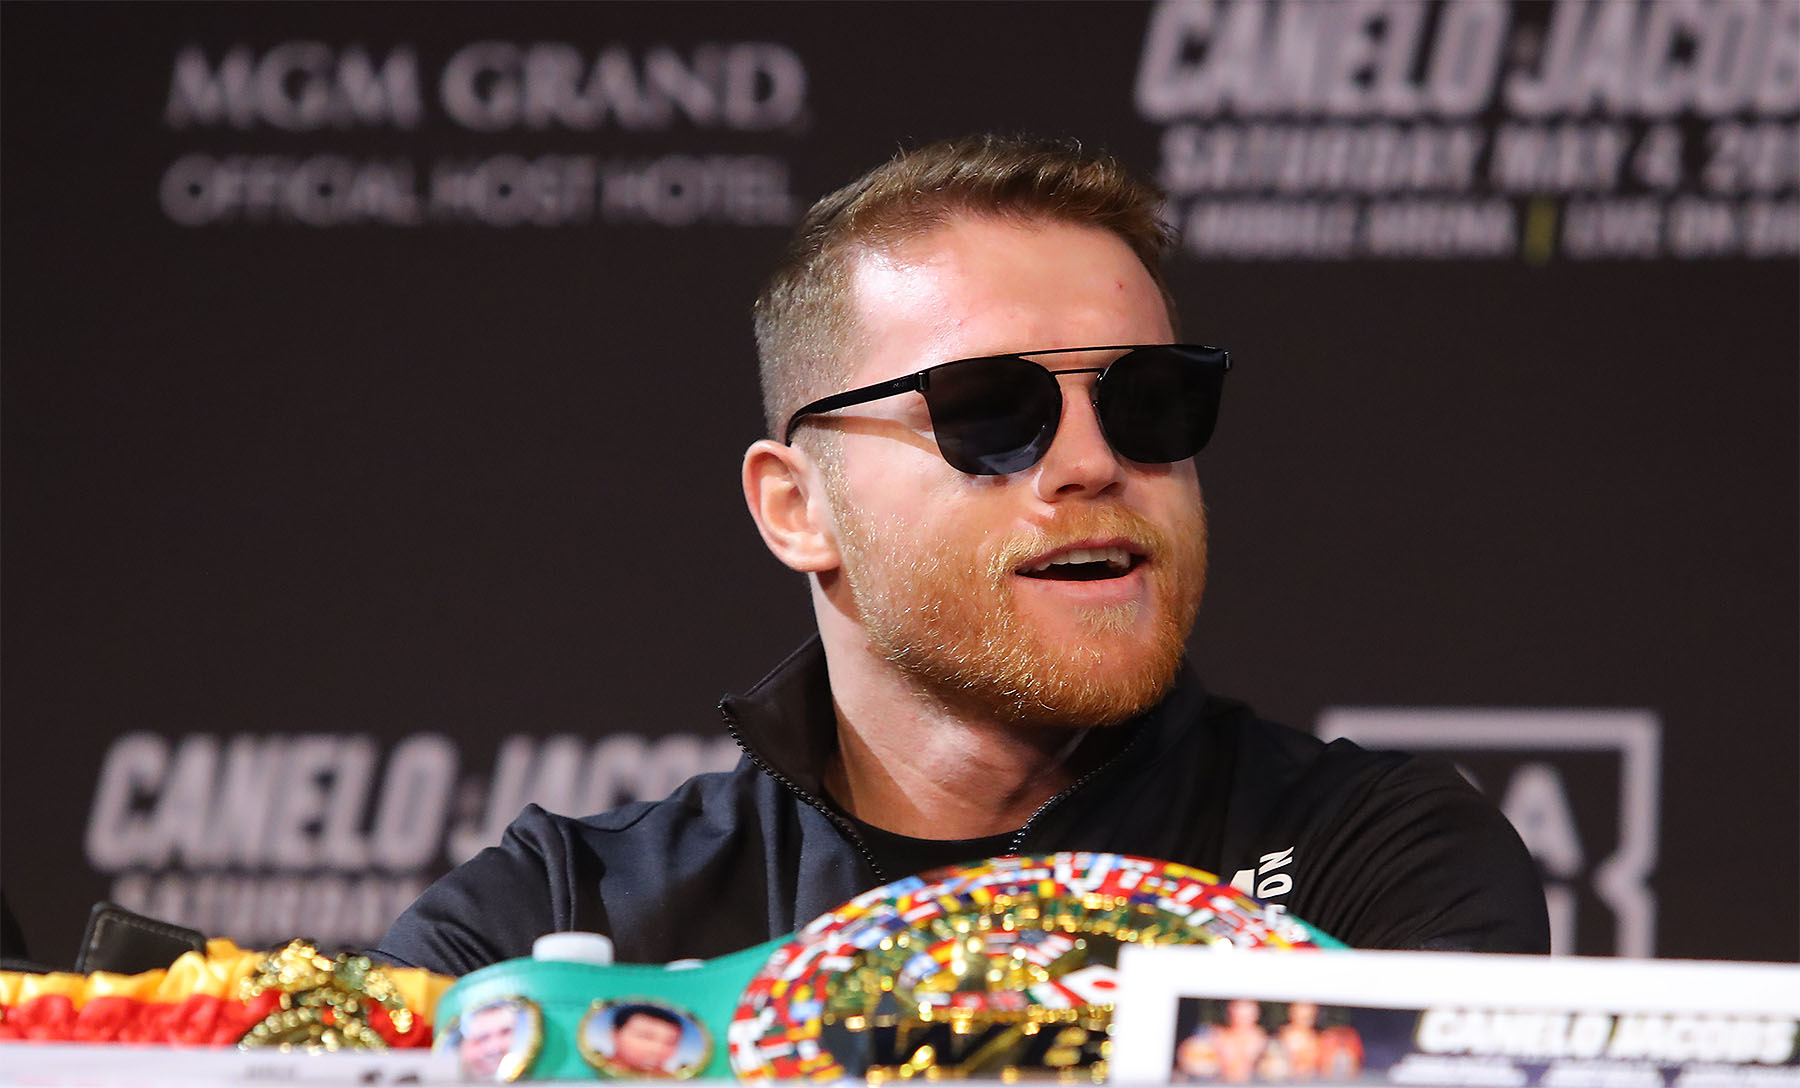 D2A83084 100D 4B19 B226 B963EB6D0840 - Canelo Has the Throne & Is Now Three Fights From Middleweight Immortality